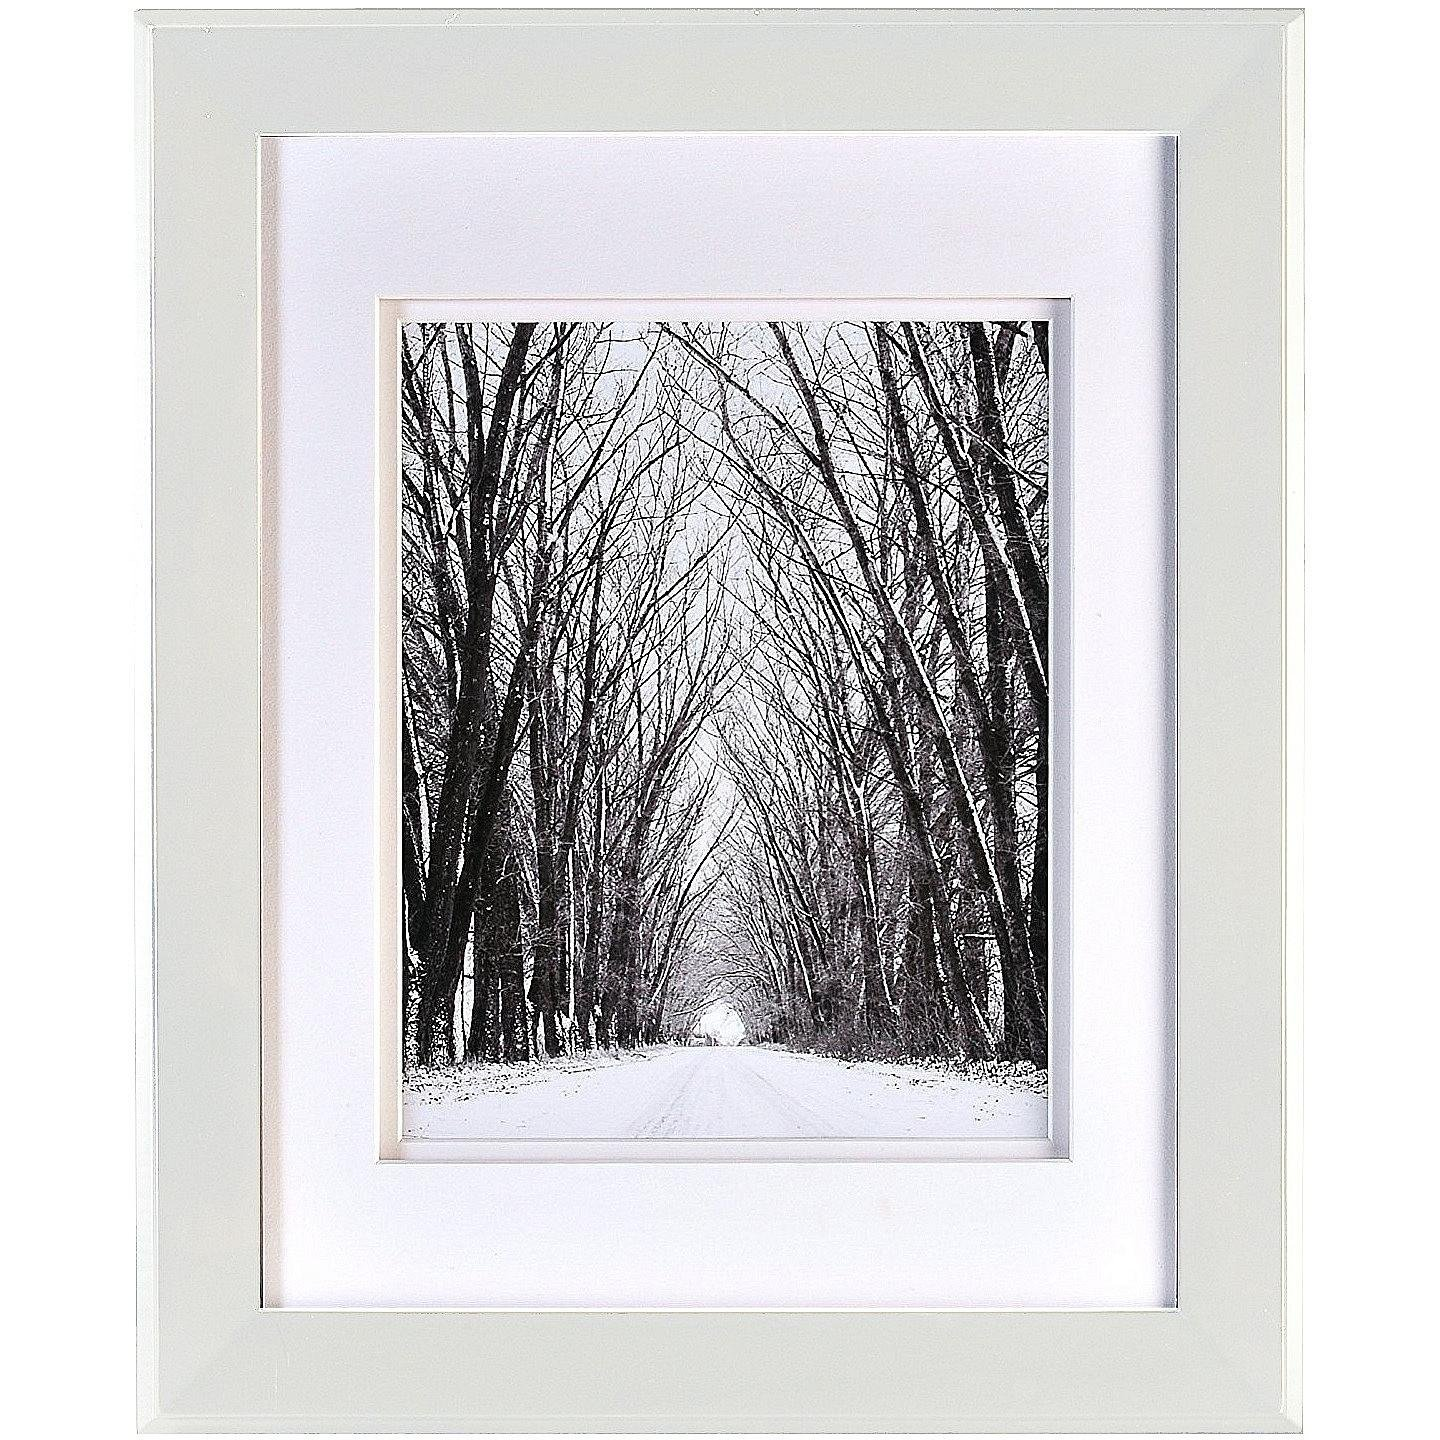 Chelsea White Wood 16x20/11x14 DBL-Matted Frame from ARTCARE by Nielsen - 11x14 by Nielsen Bainbridge (Image #1)